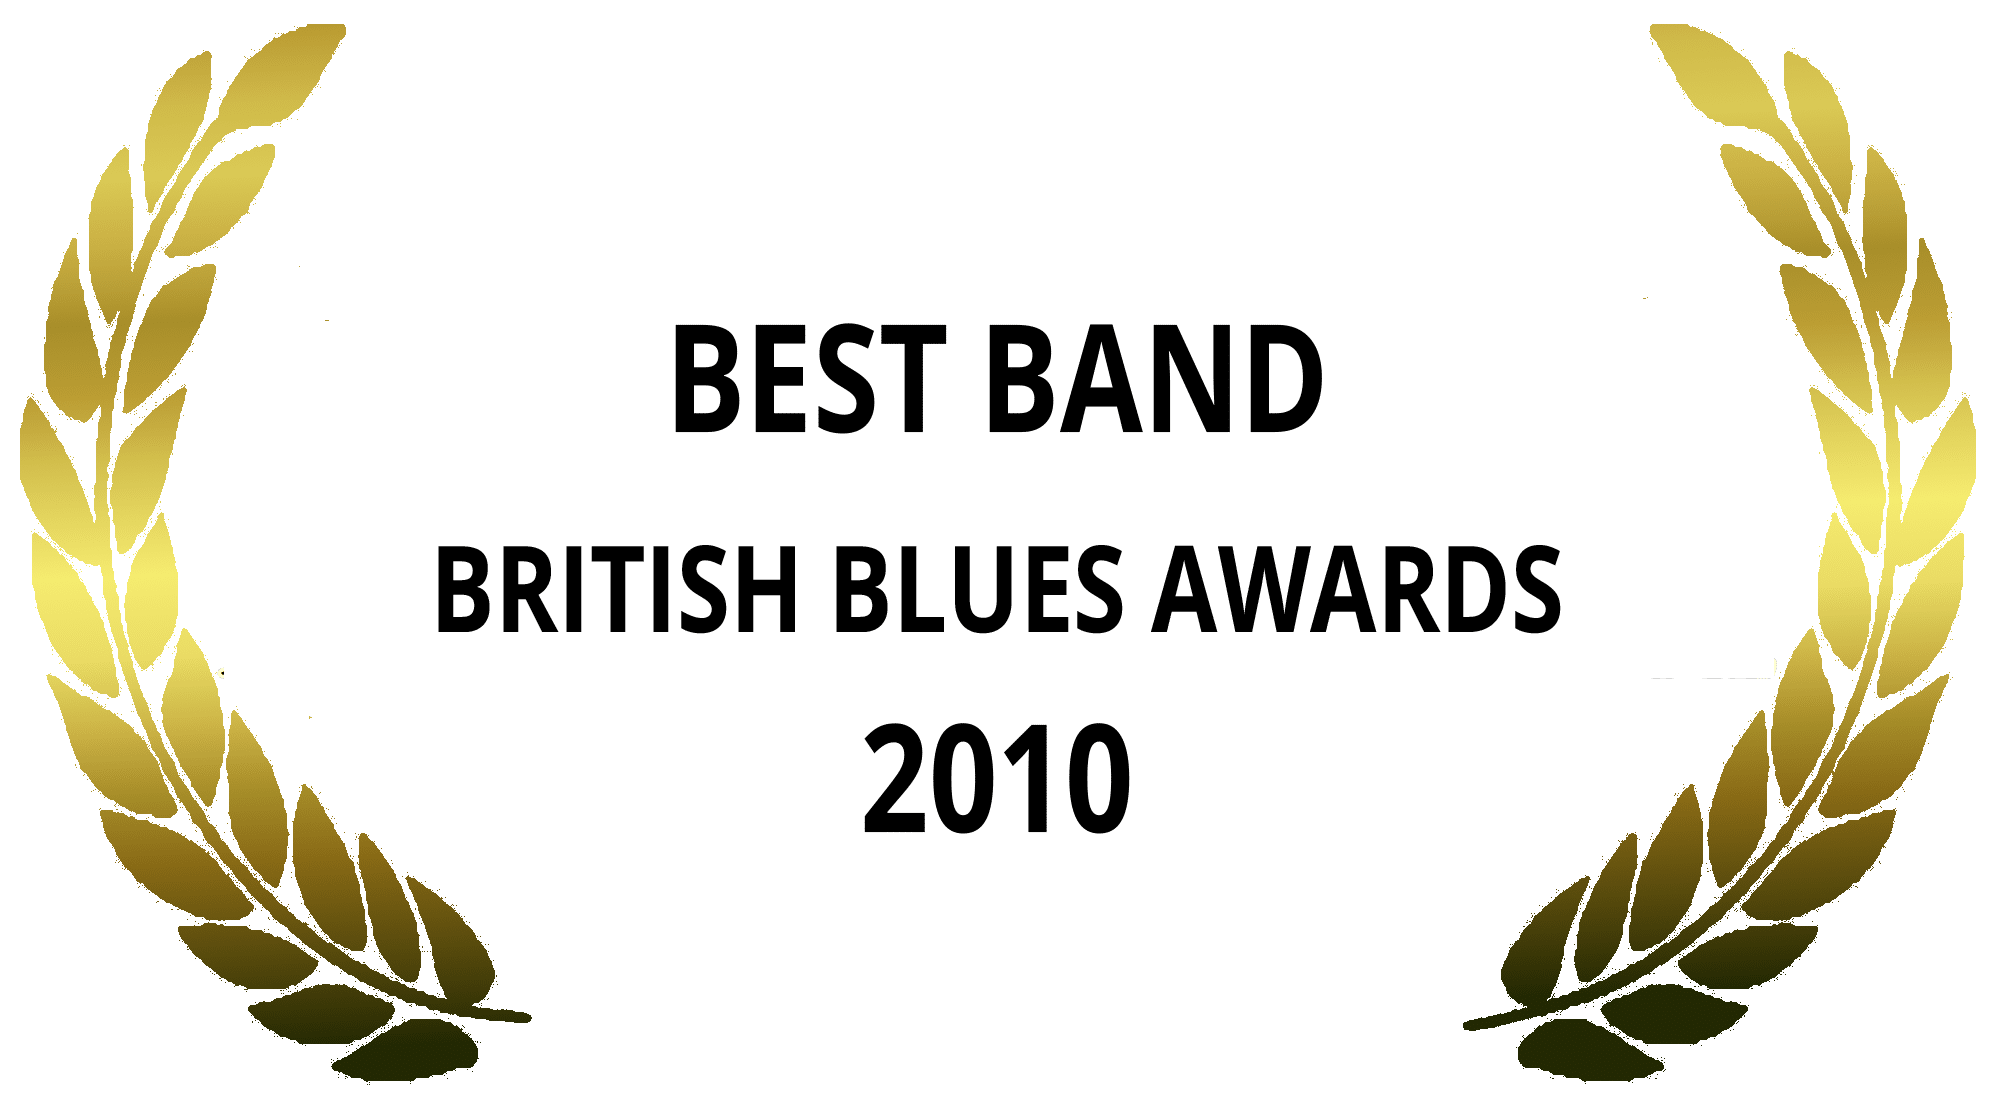 Best band 2010